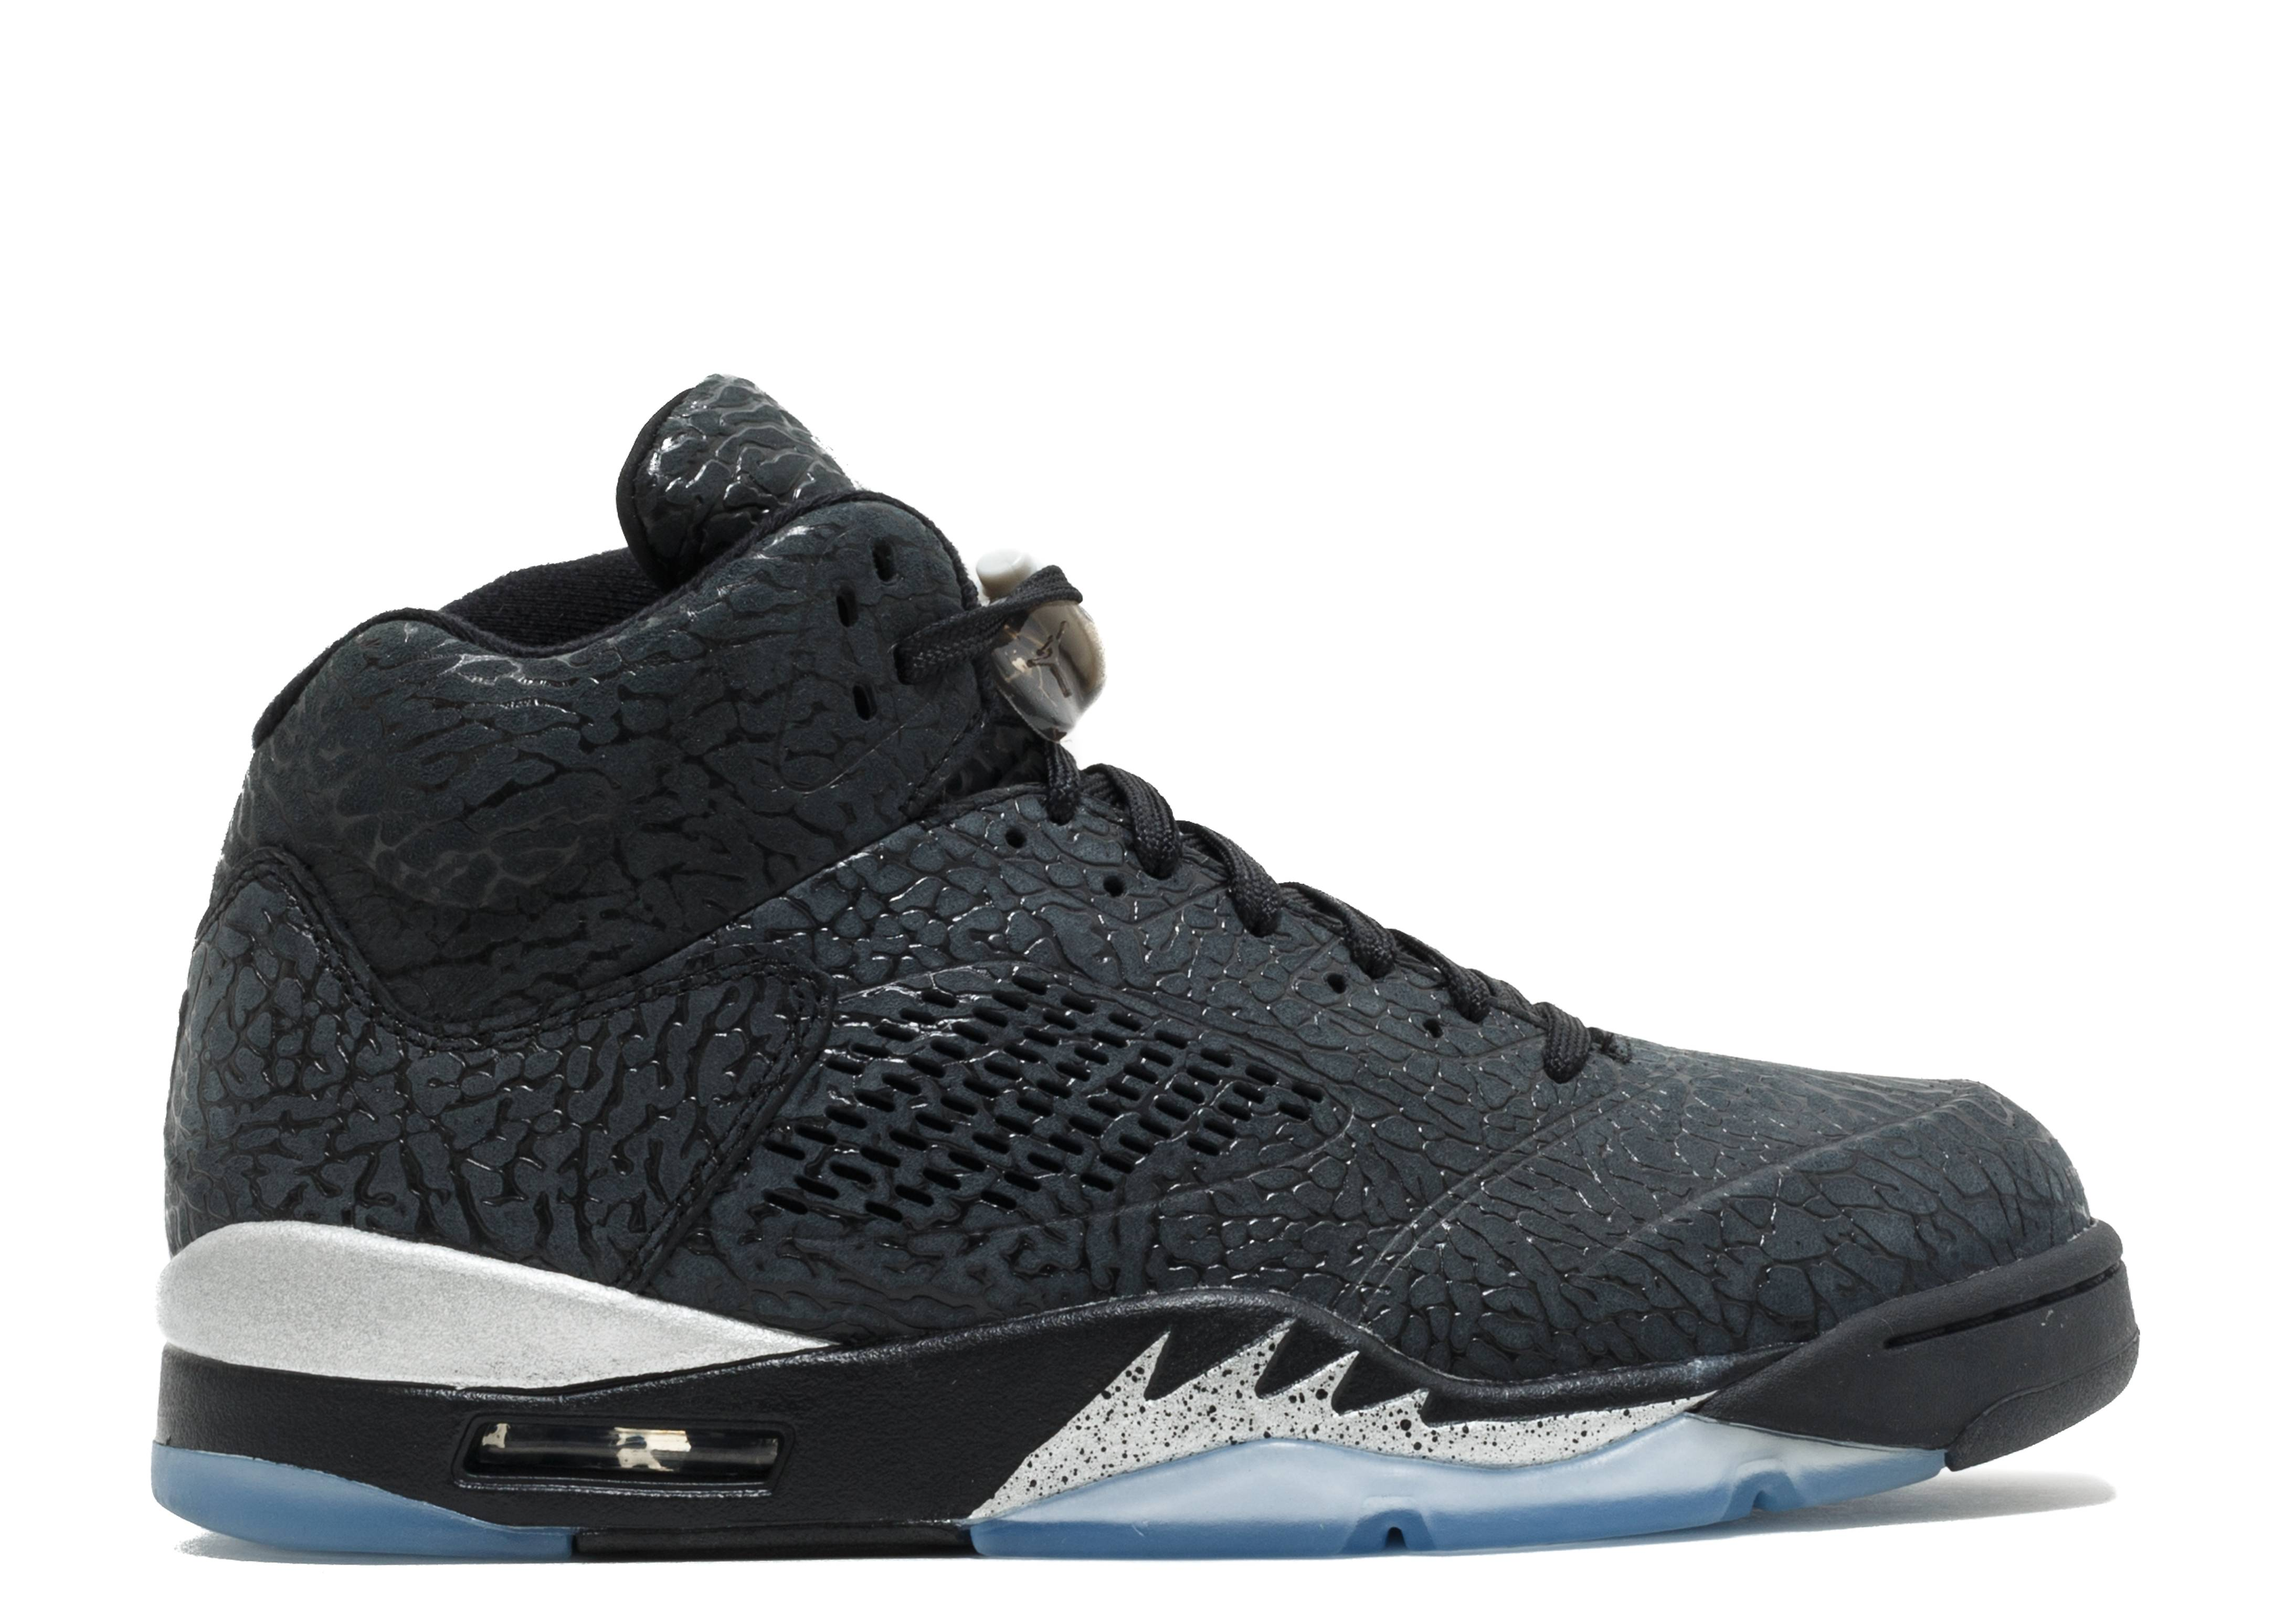 promo code d11c8 20a49 air jordan 5 retro 3lab5